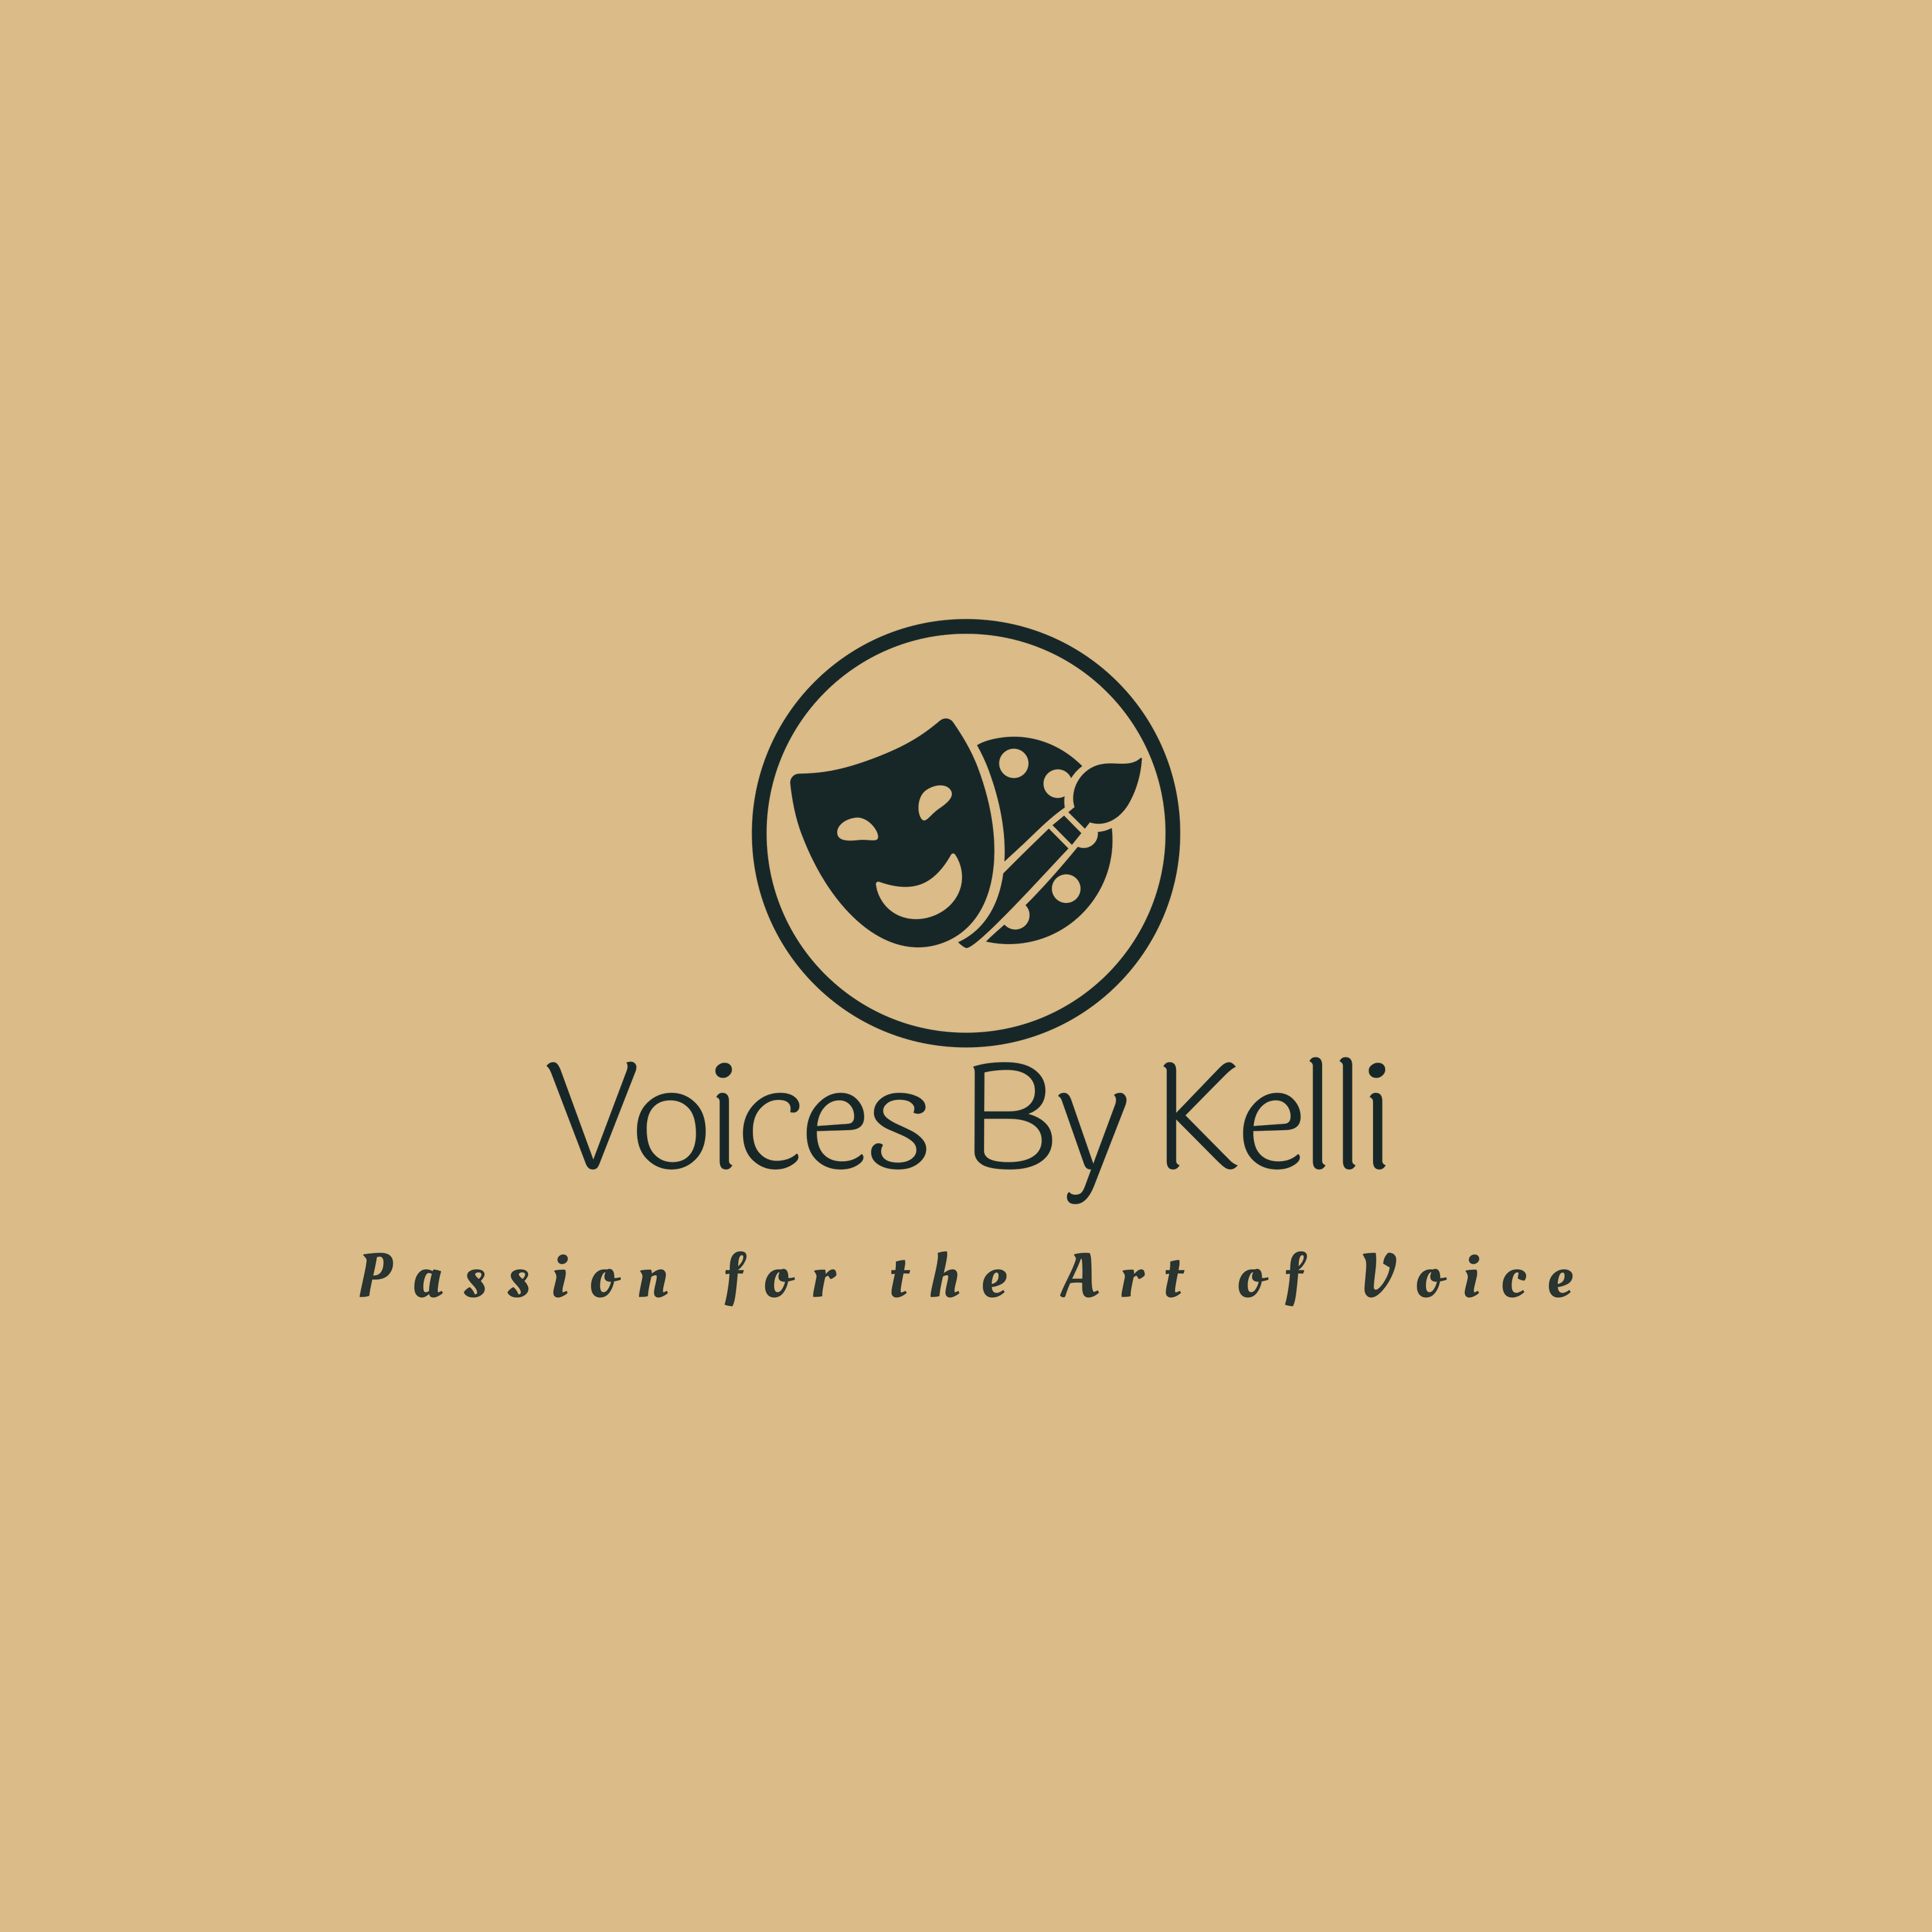 Voices By Kelli